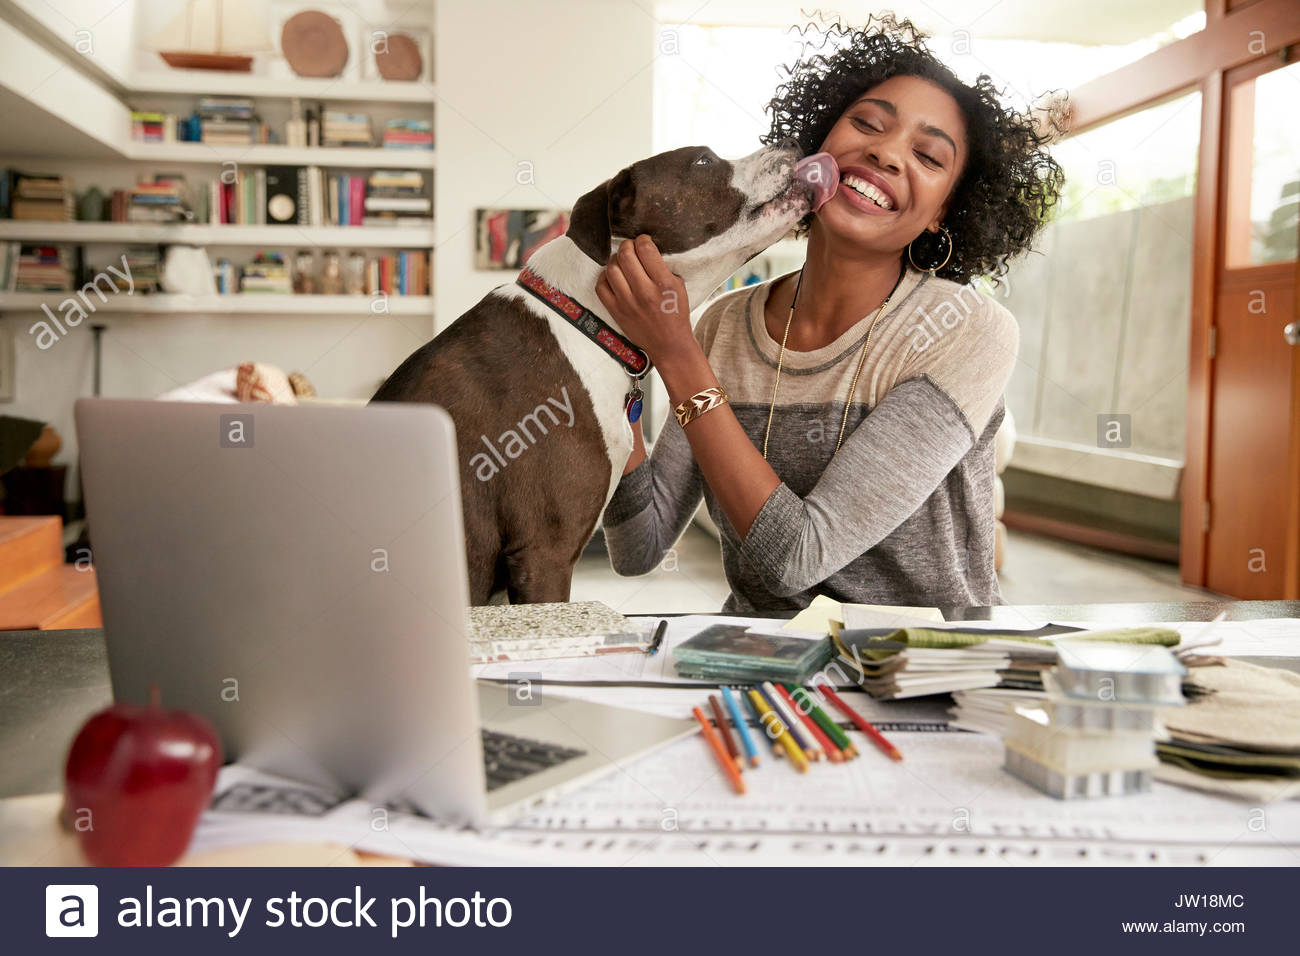 Dog licking face of female interior designer working at home office desk - Stock Image